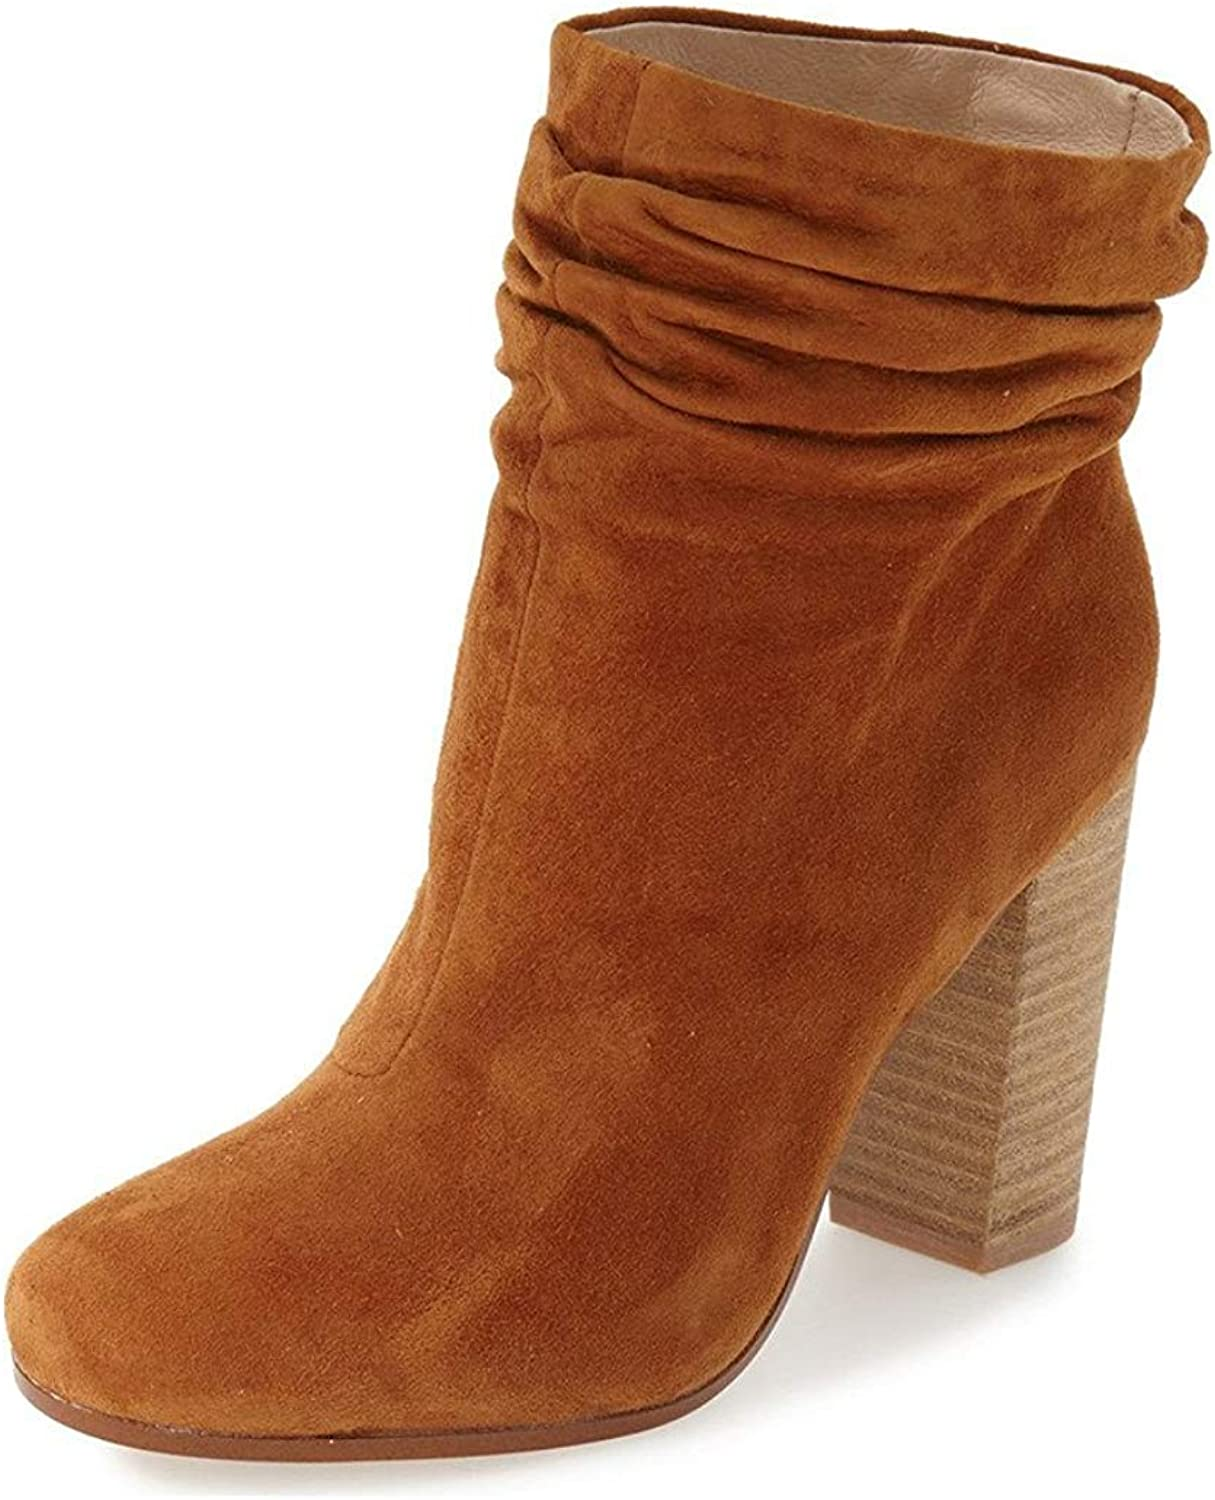 YDN Women Casual Faux Suede Slouchy Booties Round Toe Ankle High Stacked Heel Boots